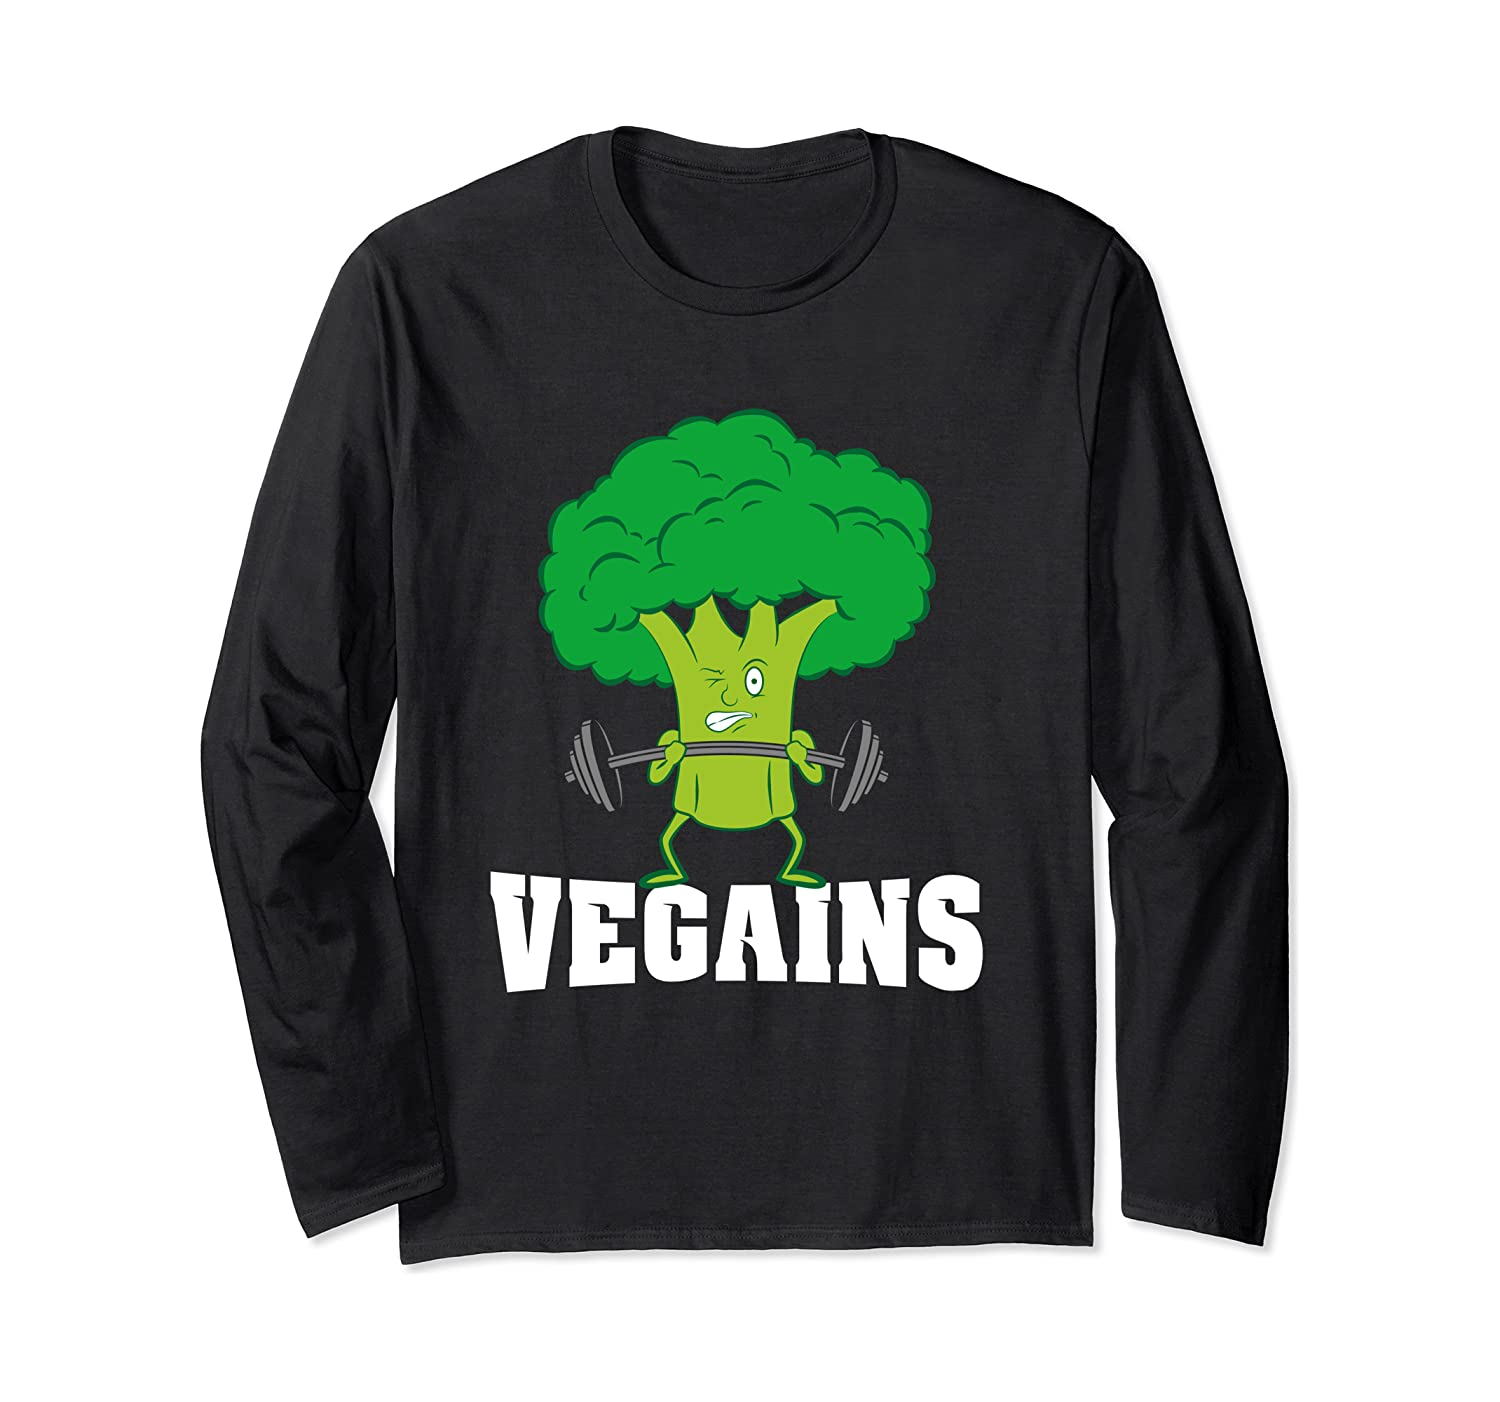 A Plant Powered Vegan Gym Workout – Funny Vegains Gift Long Sleeve T-shirt